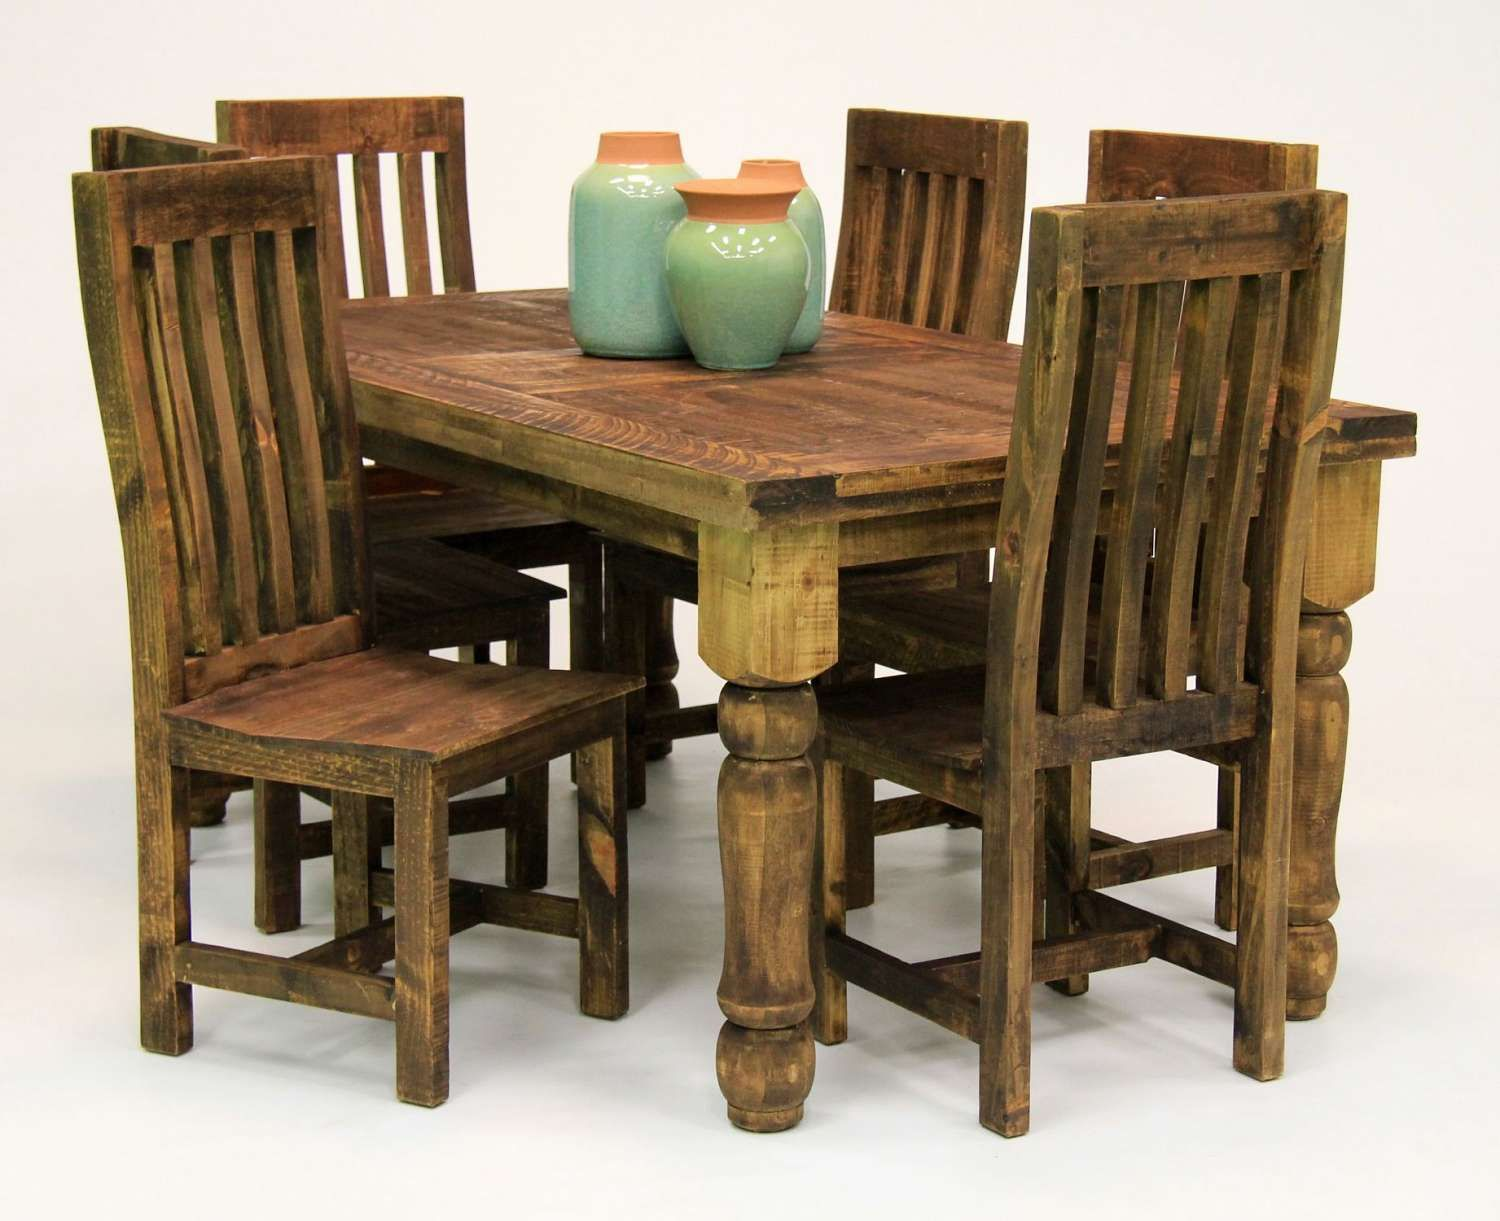 Admirable 5 Piece Rustic Dining Set Ffo Home New Arrivals Rustic Andrewgaddart Wooden Chair Designs For Living Room Andrewgaddartcom